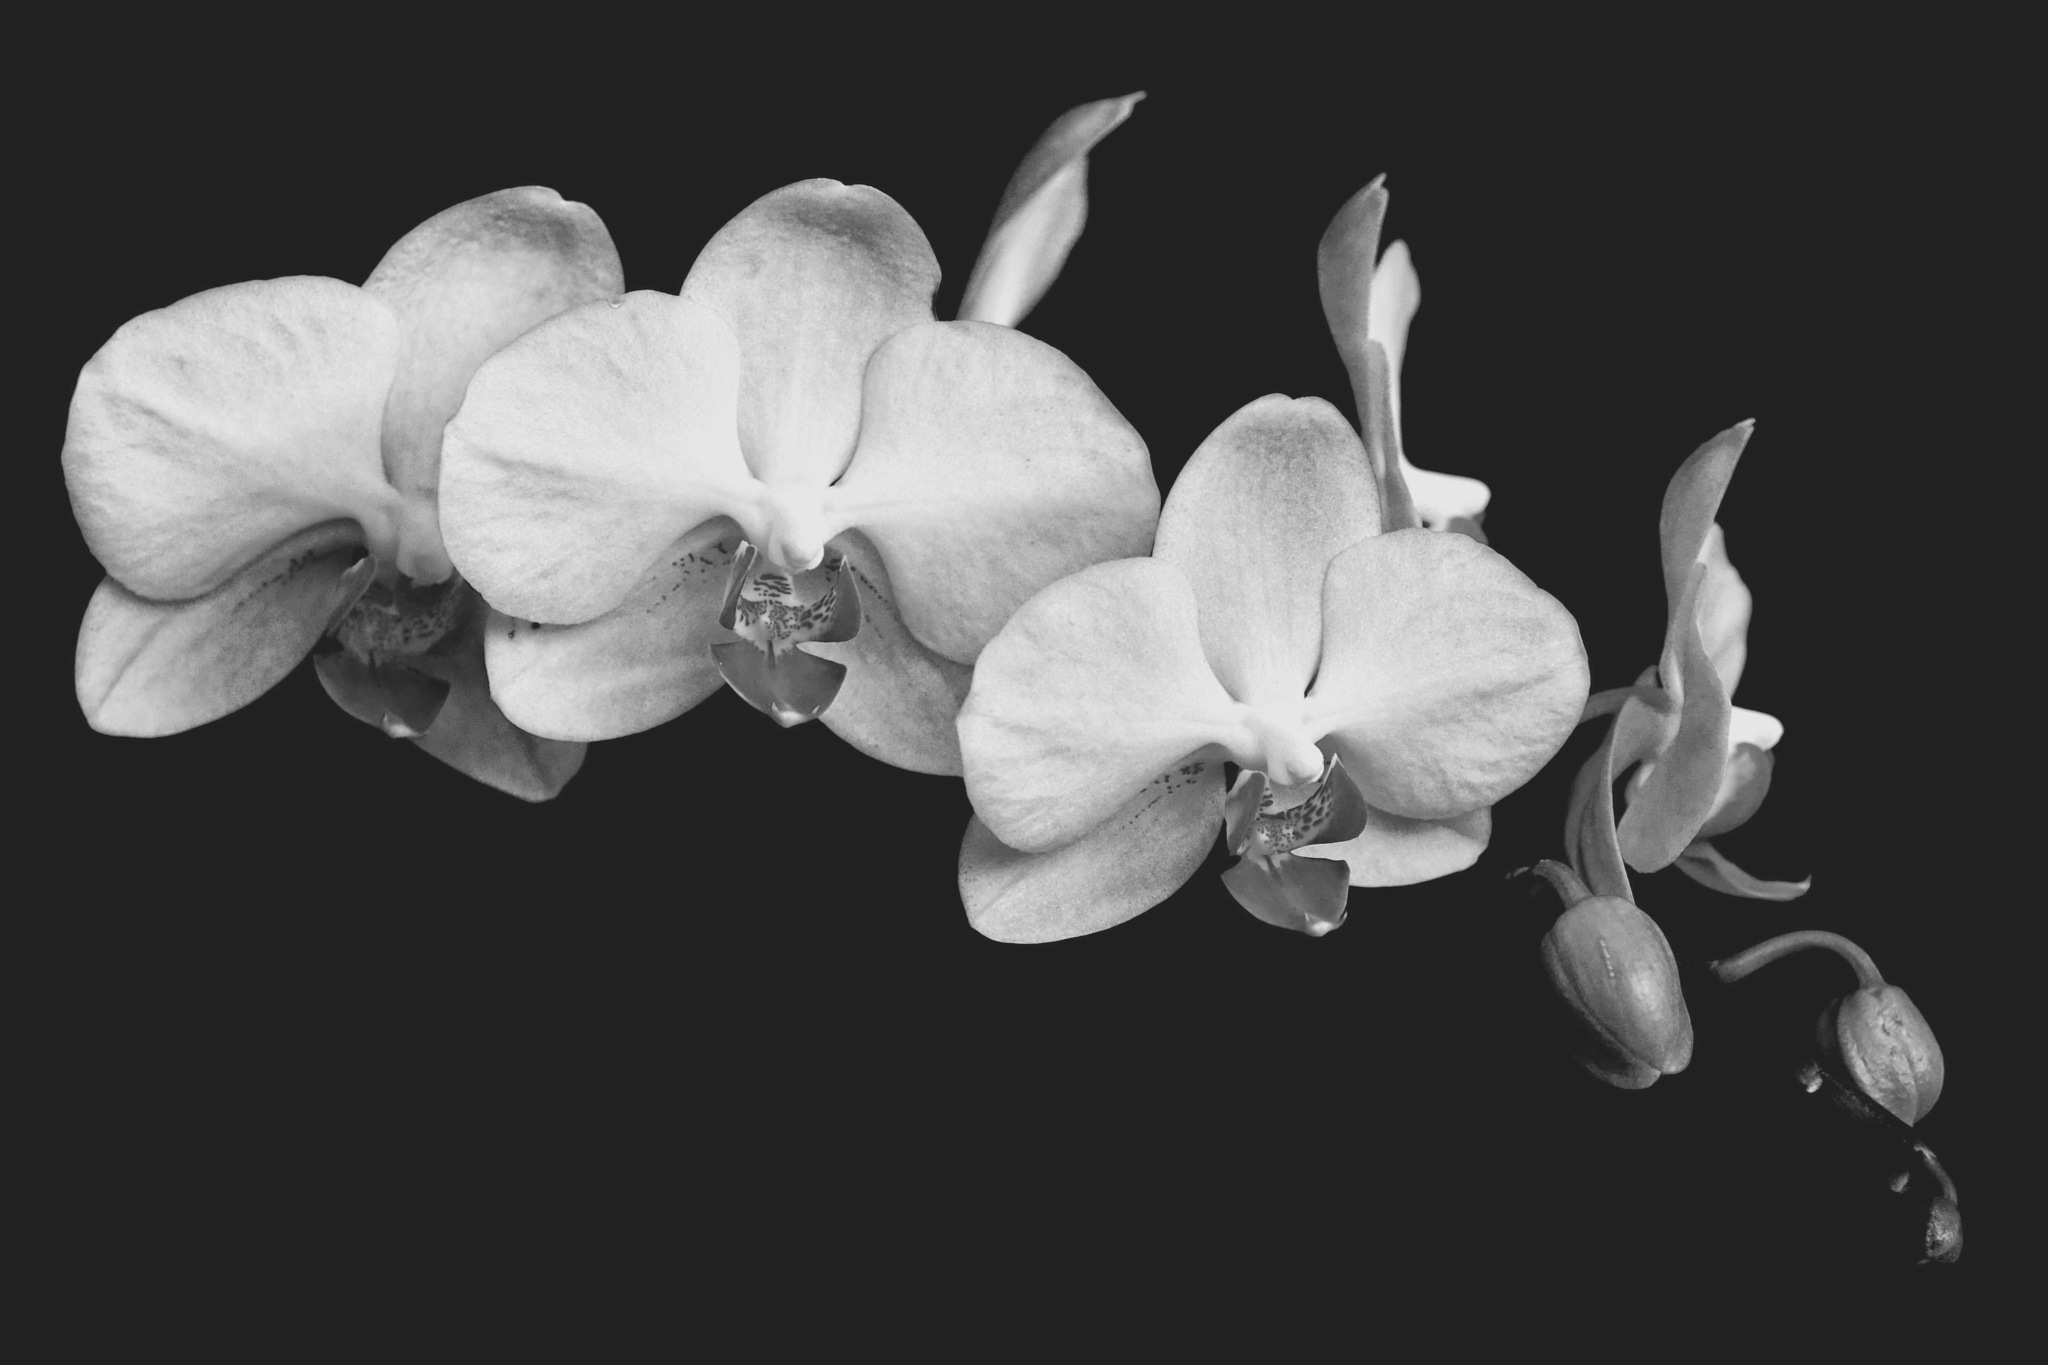 Blooms in black and white by leecj0129